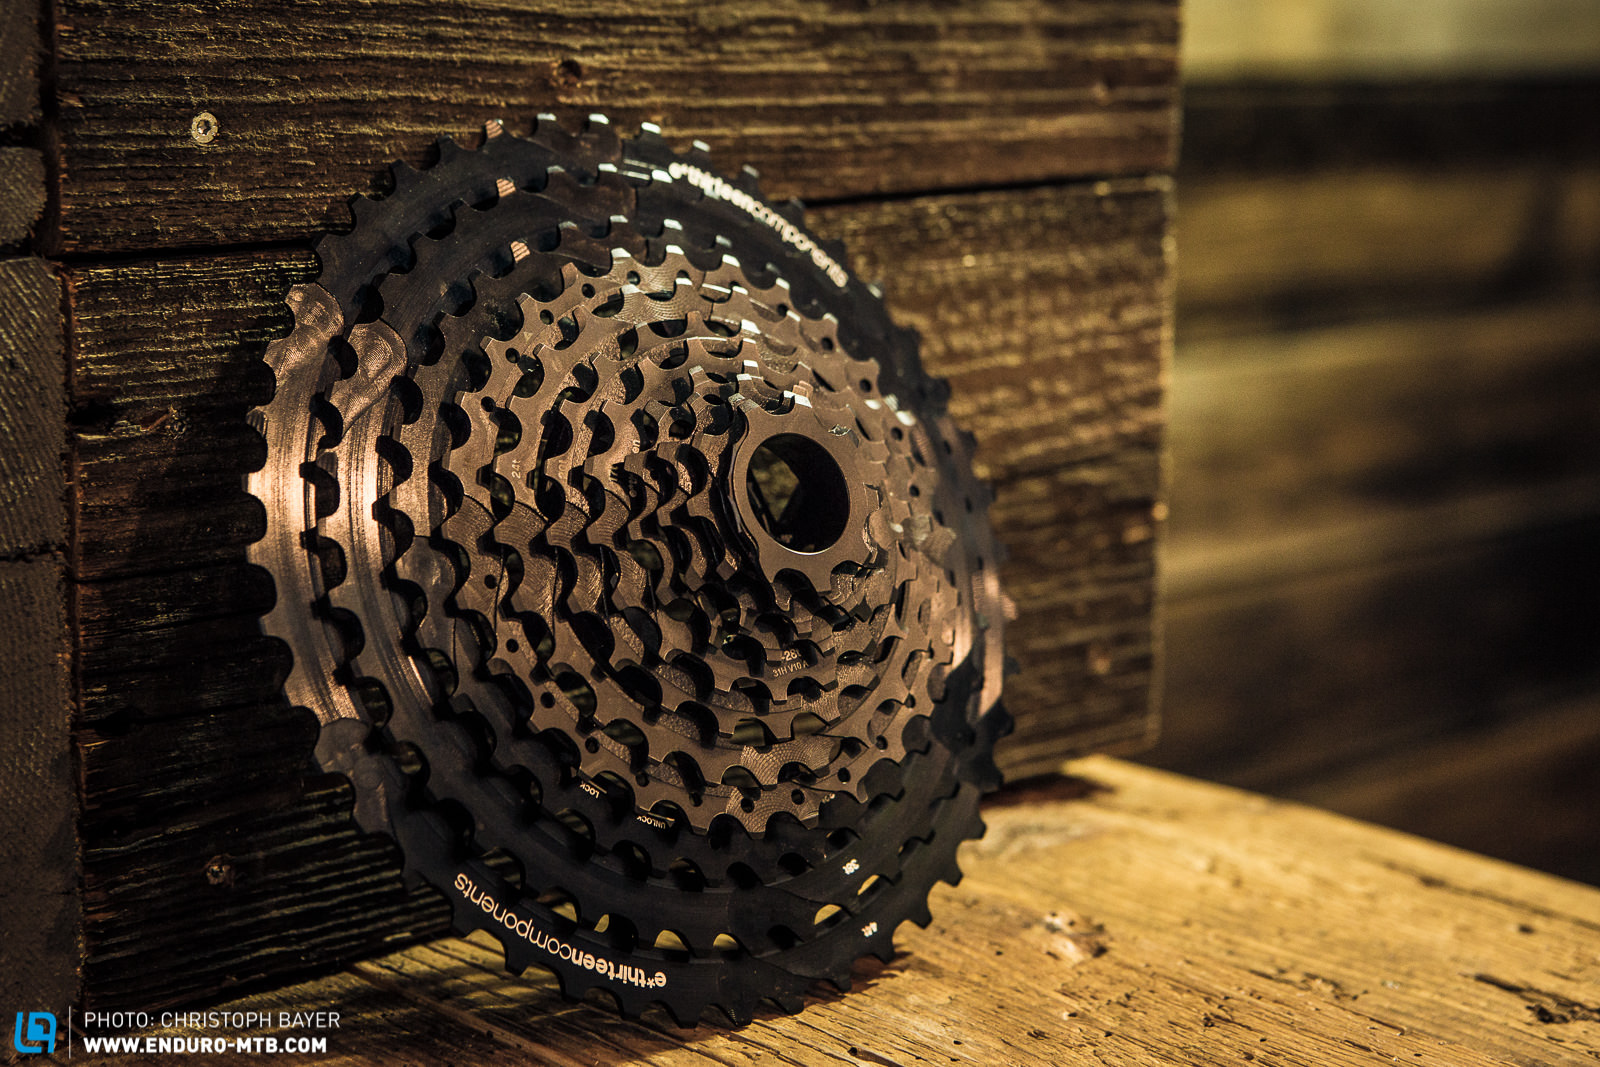 Eurobike 2015 Huge Gear Ratios And Lots Of Carbon From E13 Crank Enduro Mountainbike Magazine